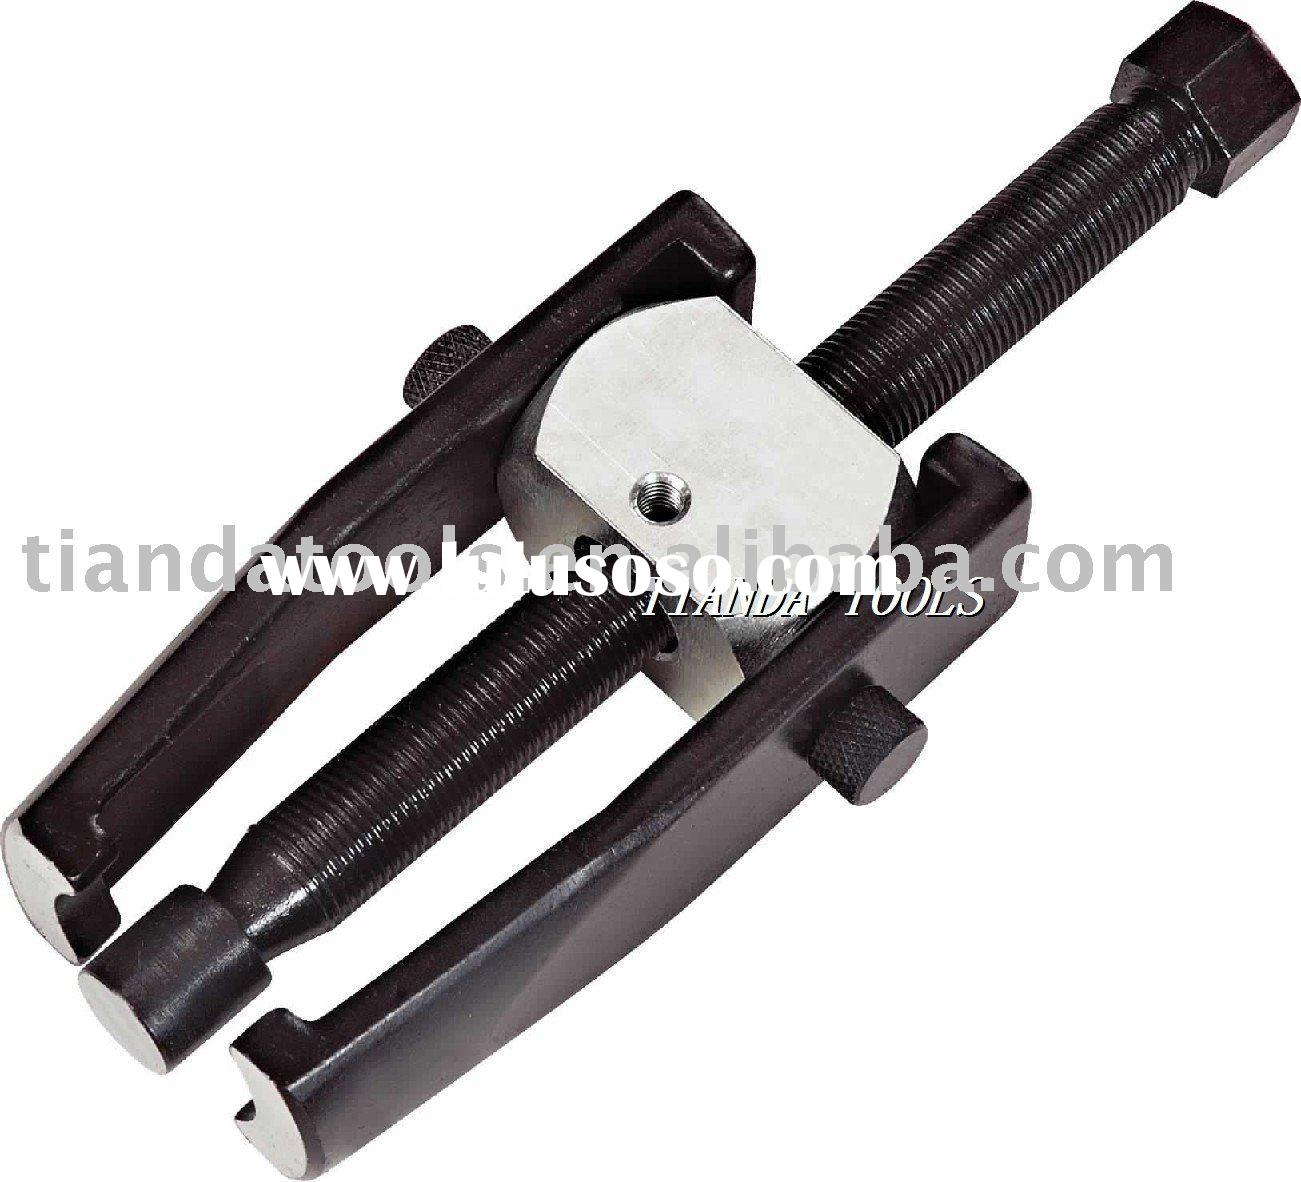 goat leg pulley puller,high quality with low price